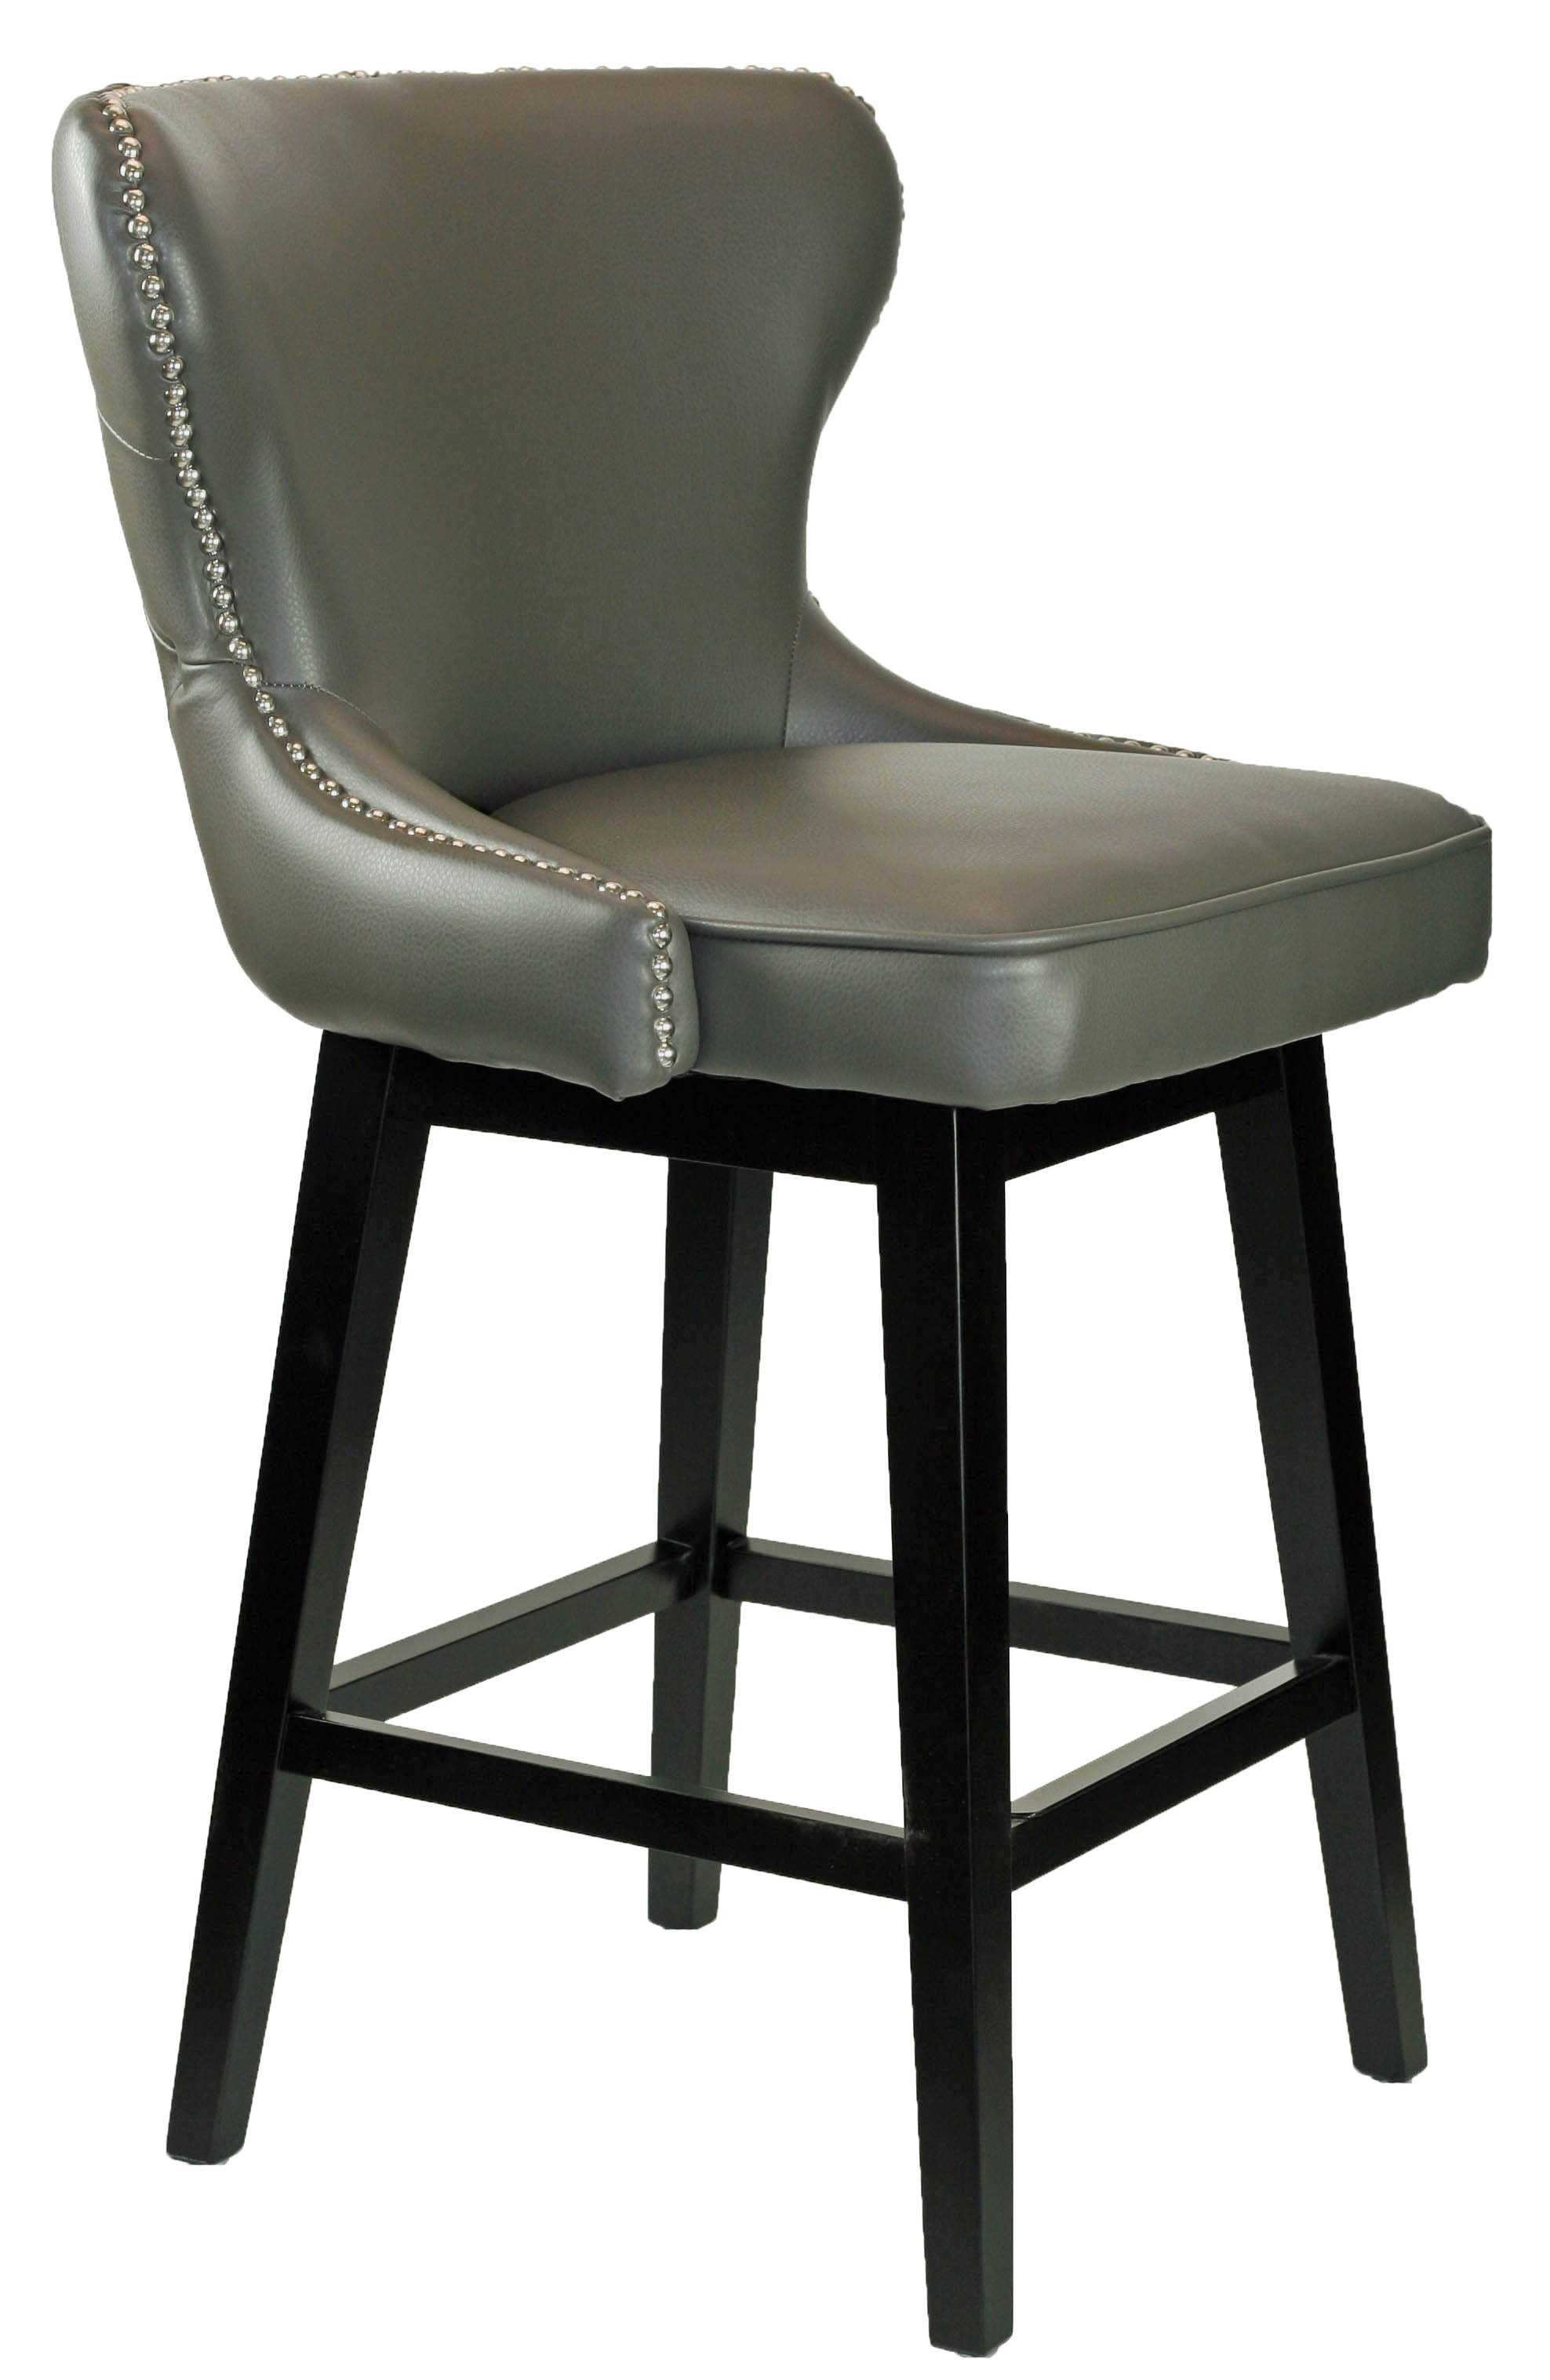 Gray Kitchen Chairs Bar Stools And Kitchen Counter Stools R 8707 Grey Leather